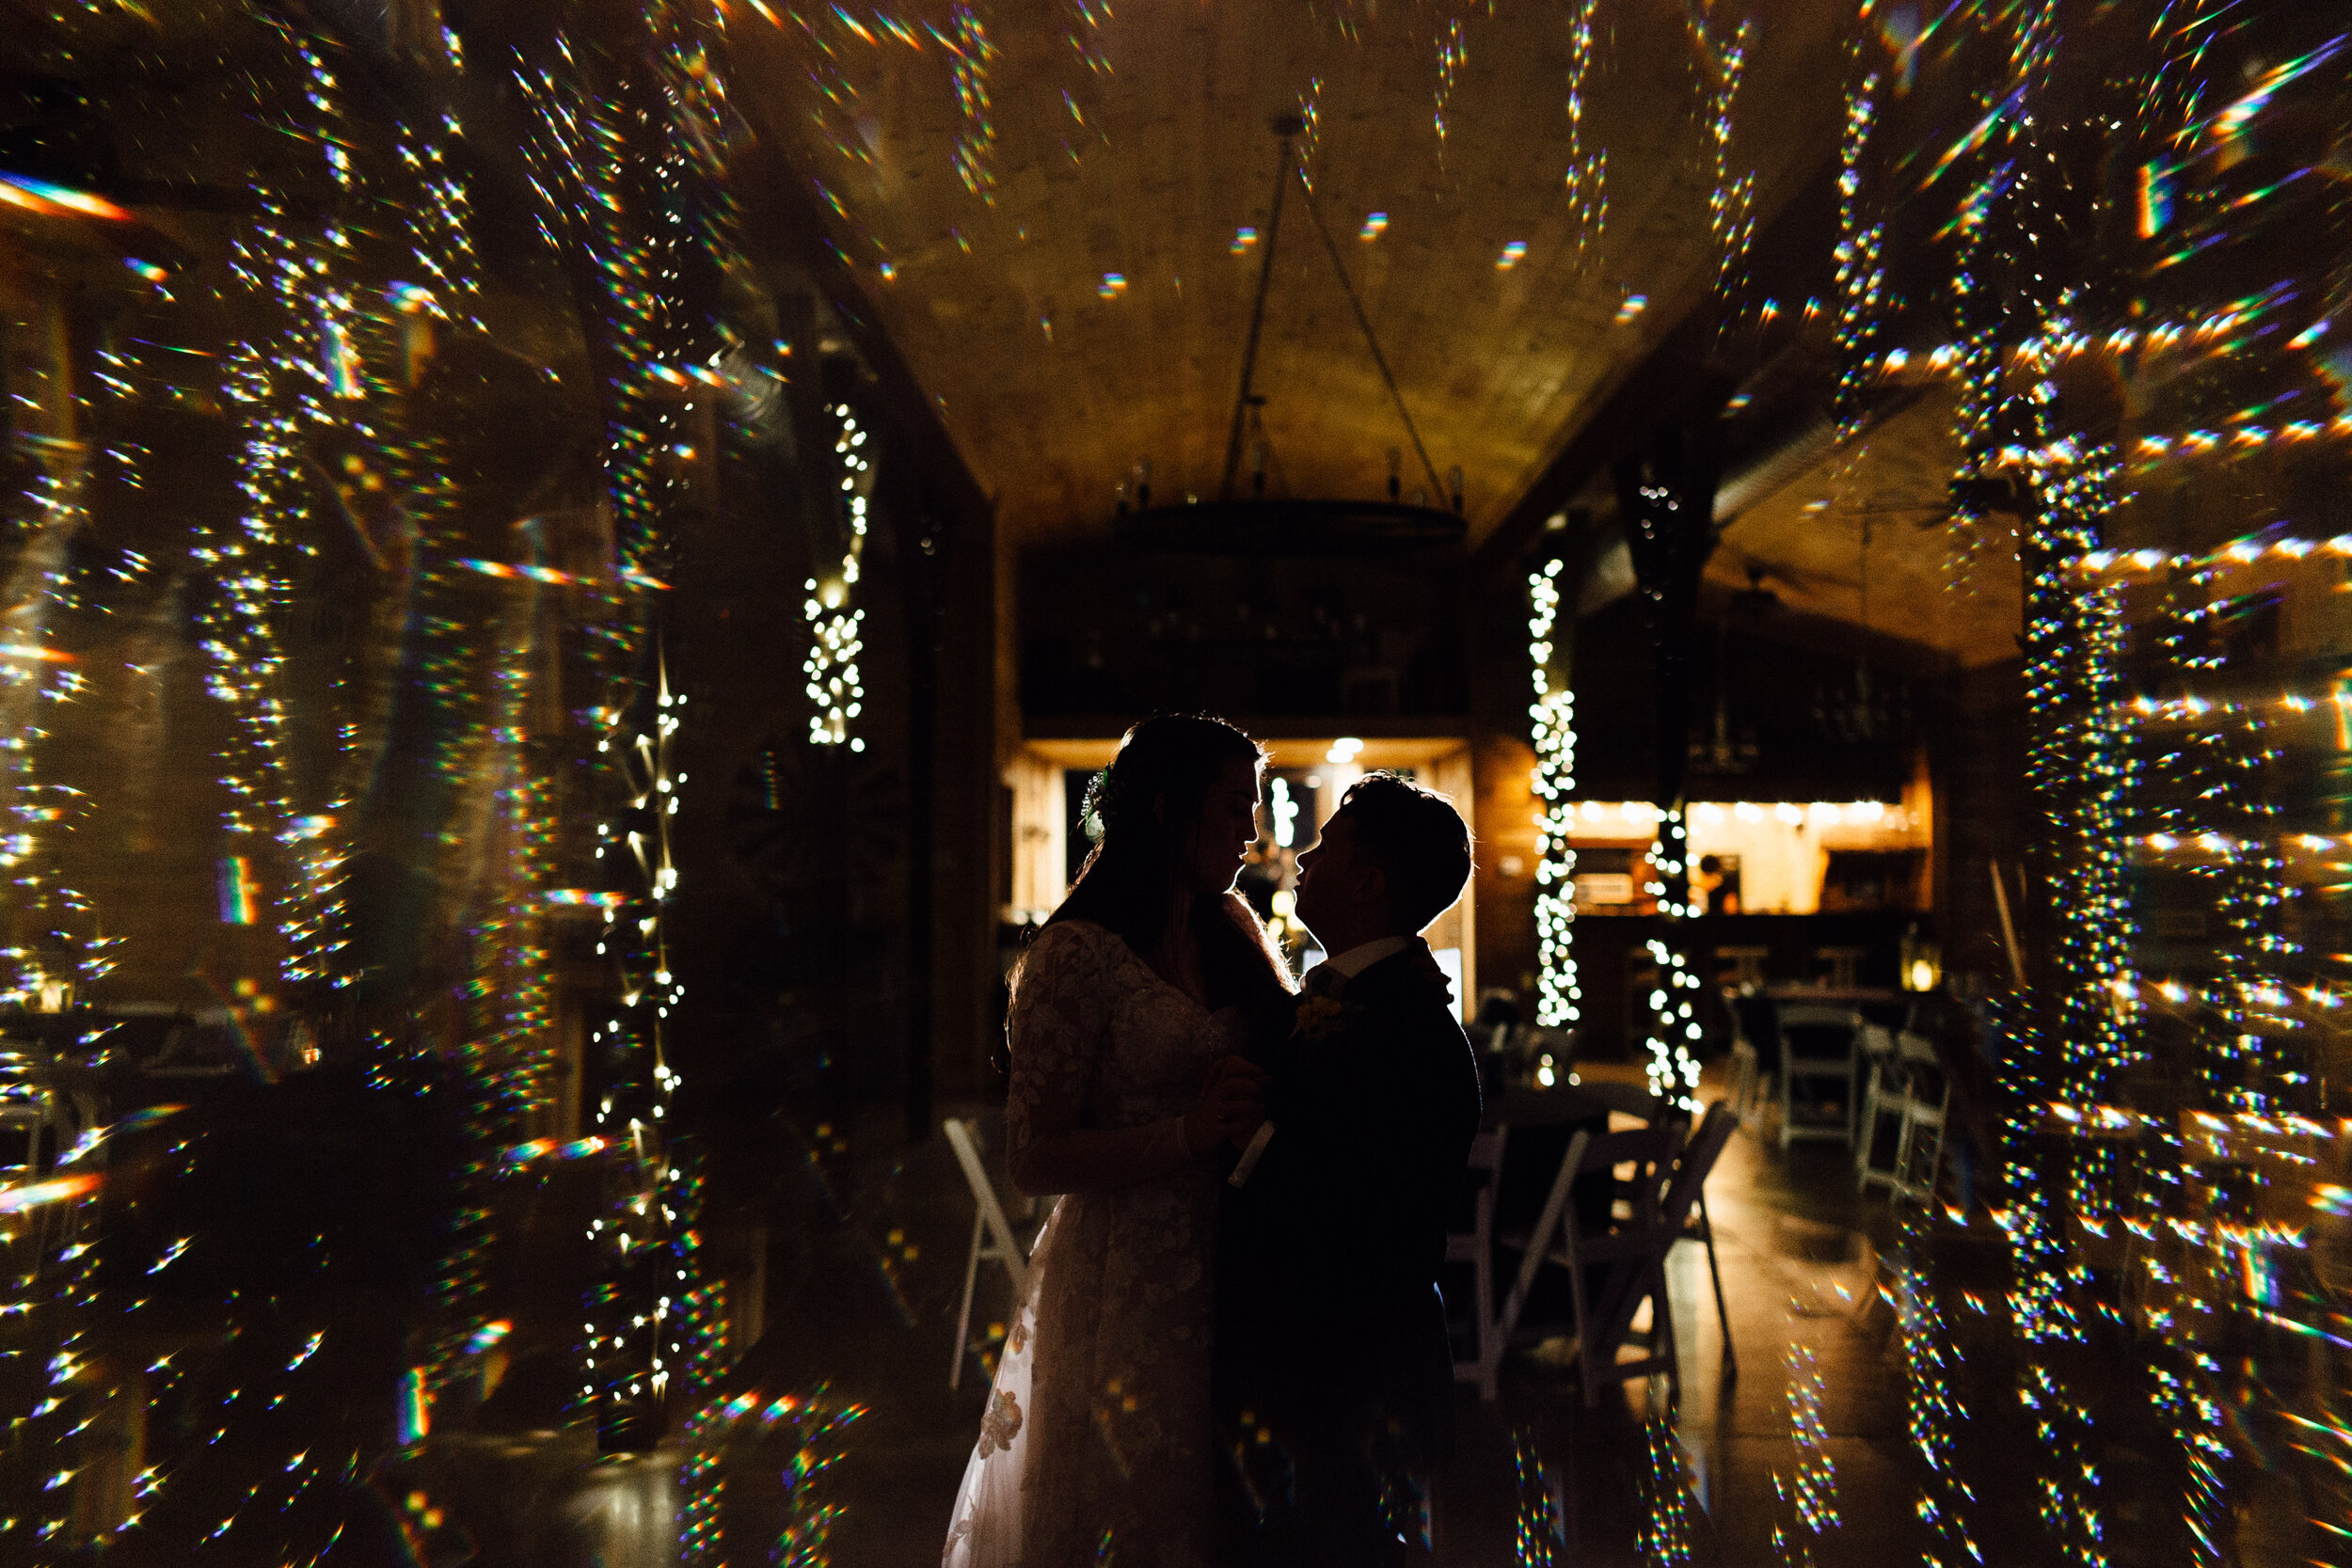 atlanta_wedding_photographers_georgia_same_sex_rustic_barn_farm_lesbian_weddings_inclusive_3333.jpg